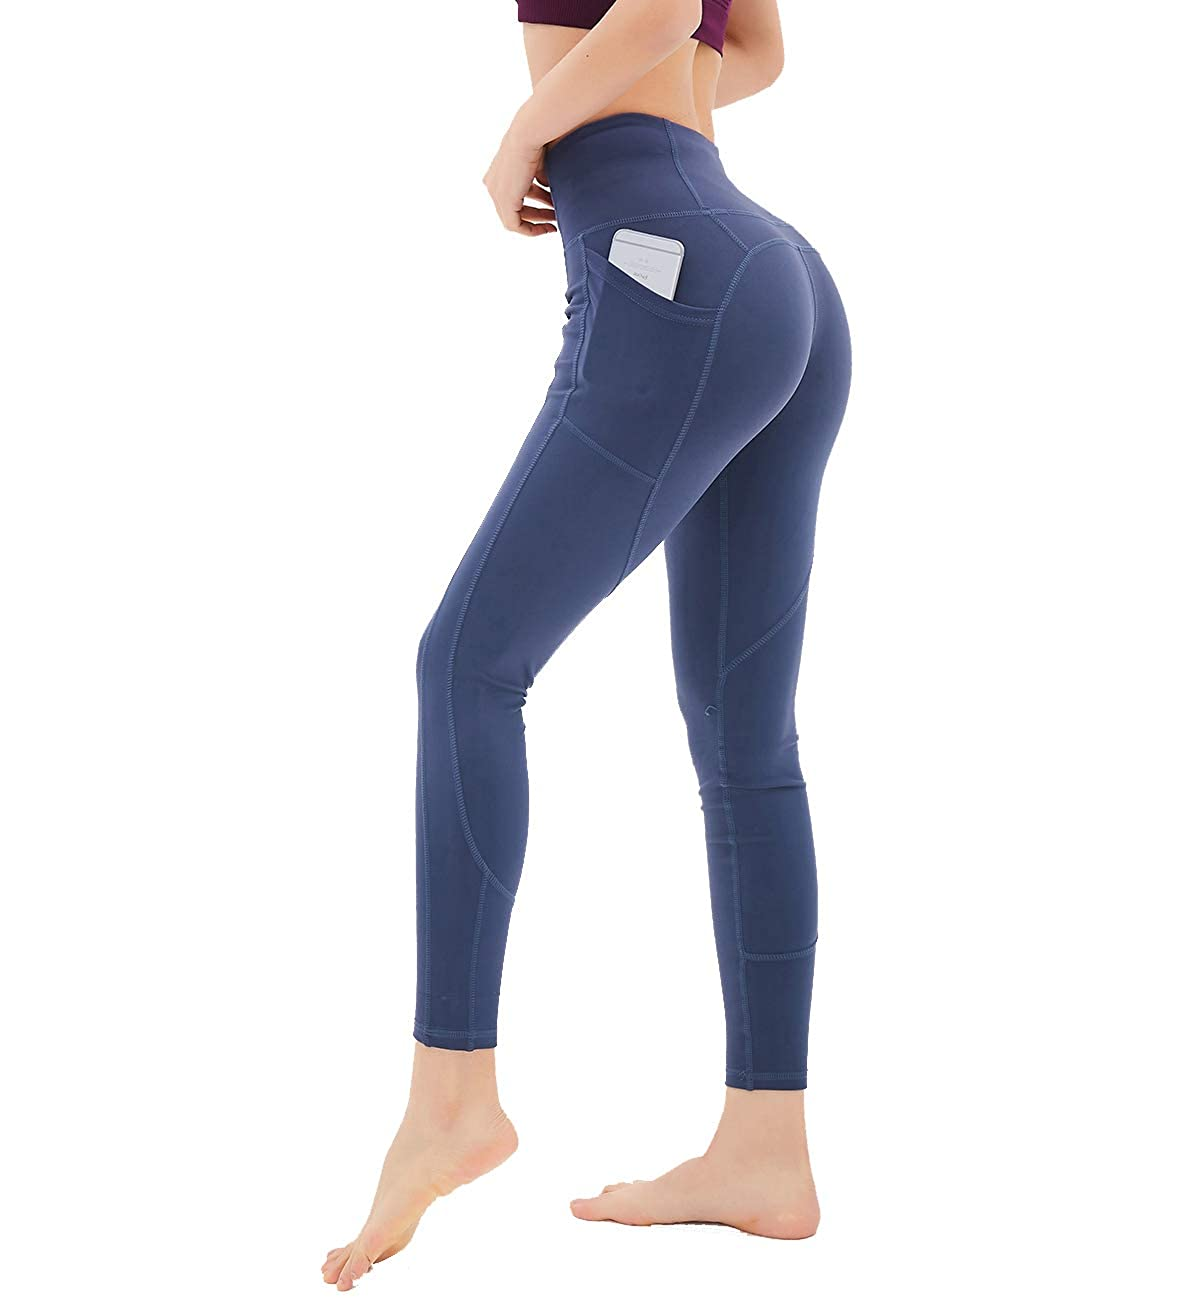 Dutte Dutta Women Yoga Pants with Pockets High Waist Tummy Control Workout Leggings